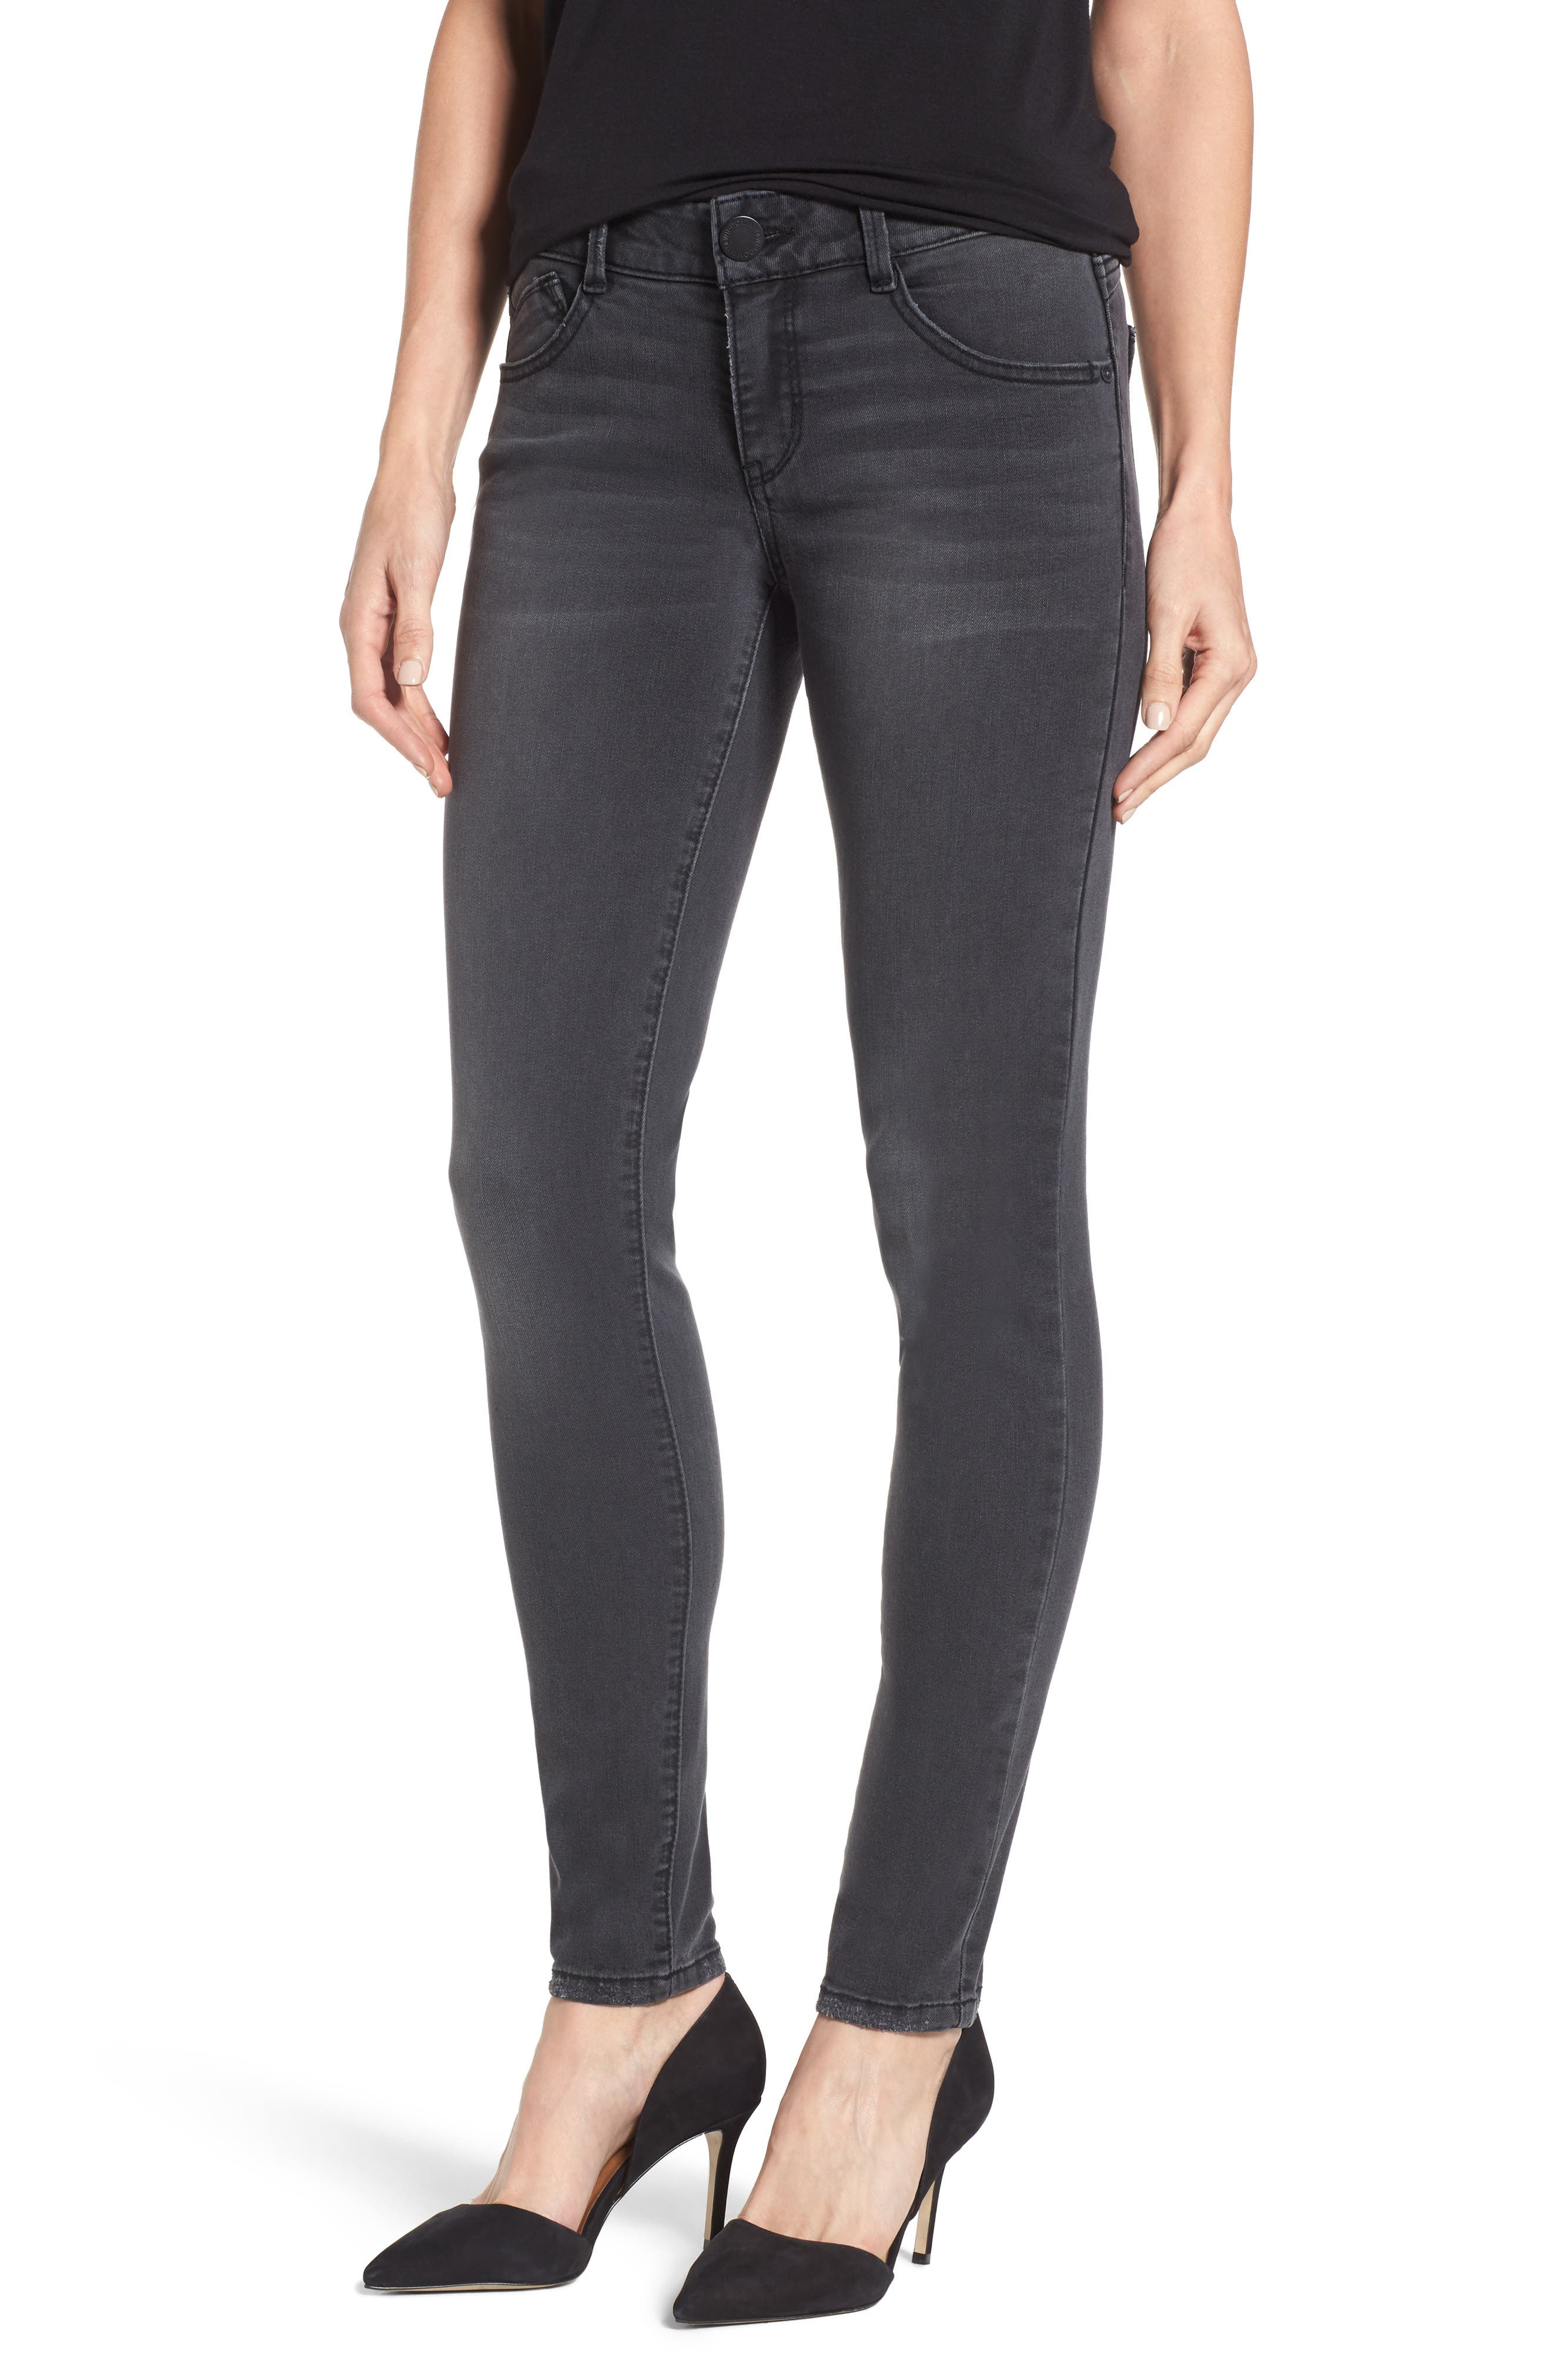 Ab-solution Stretch Skinny Jeans,                         Main,                         color, GREY